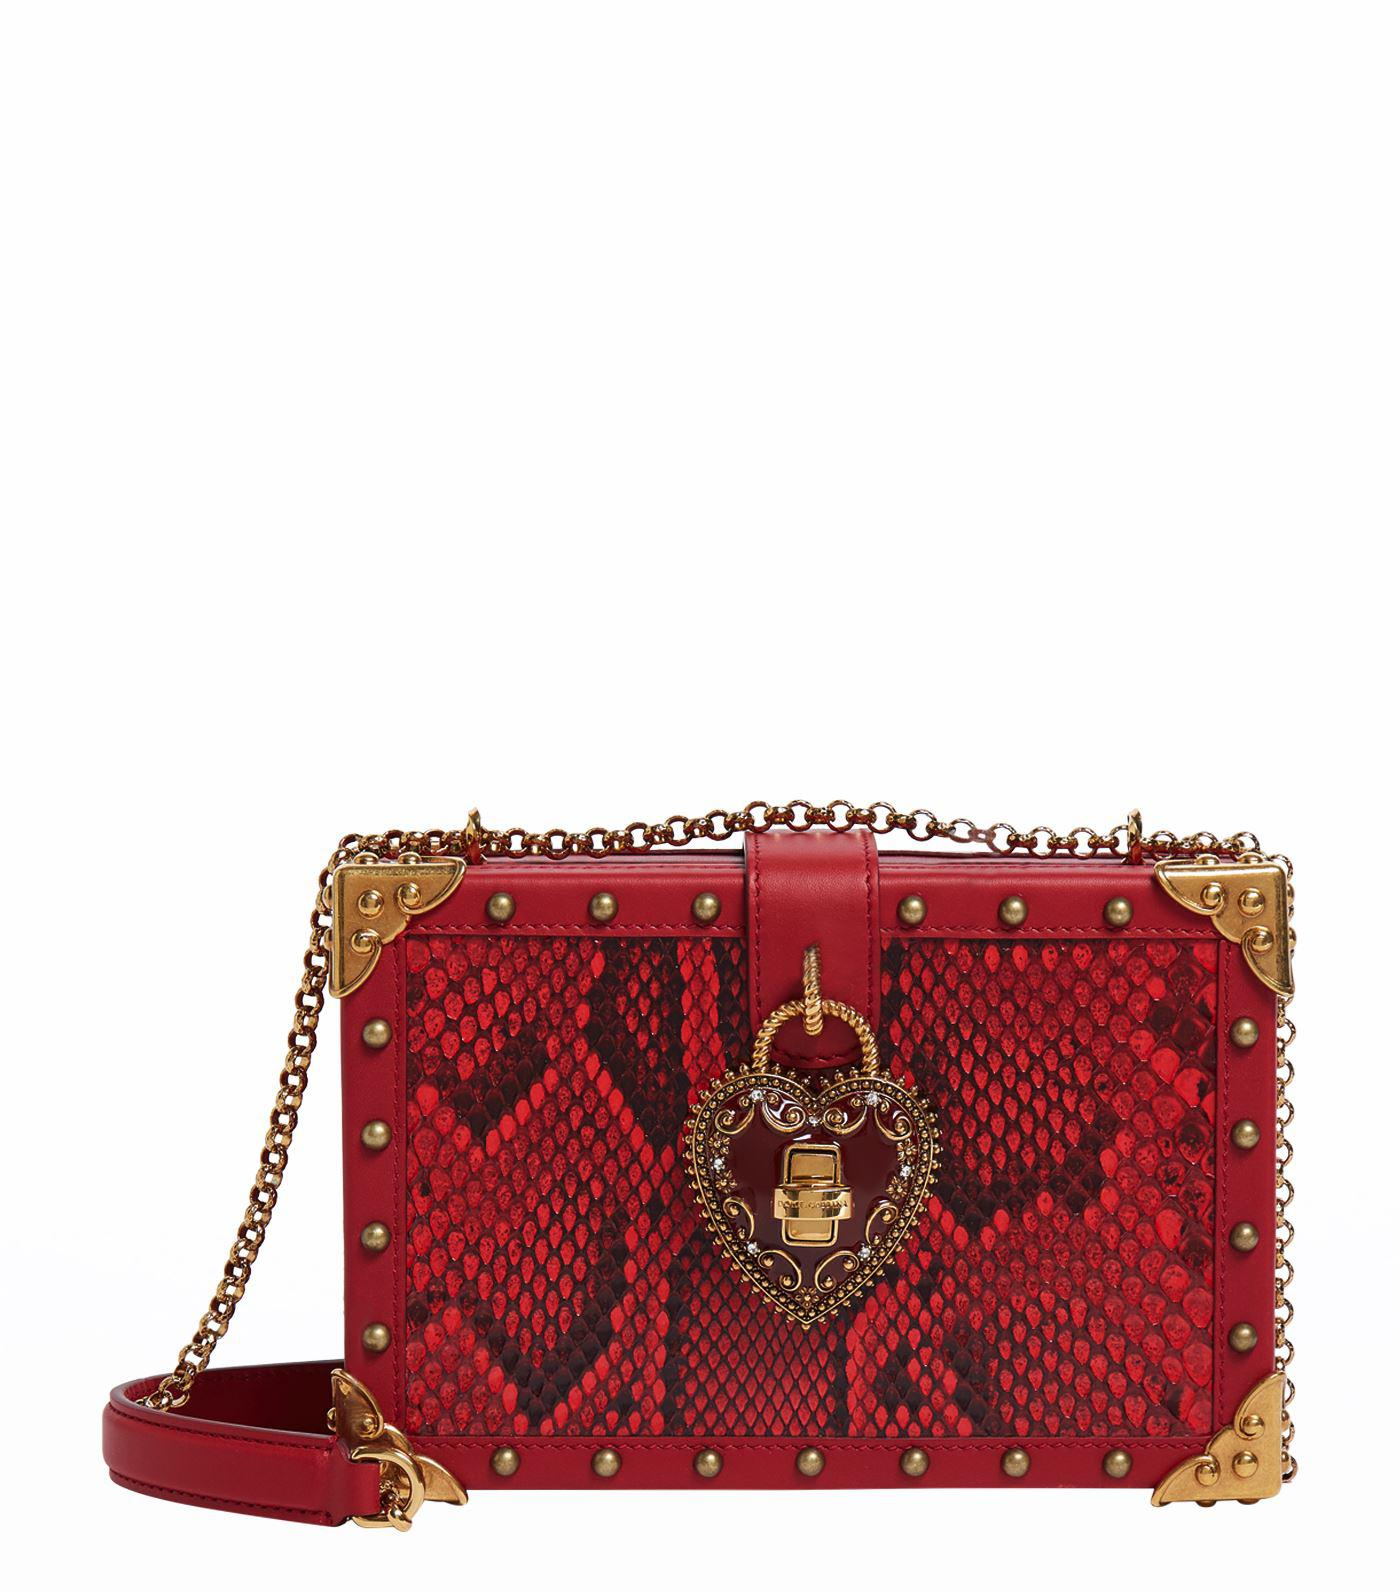 Dolce   Gabbana Heart Box Bag in Red - Lyst 881e588ad2f78